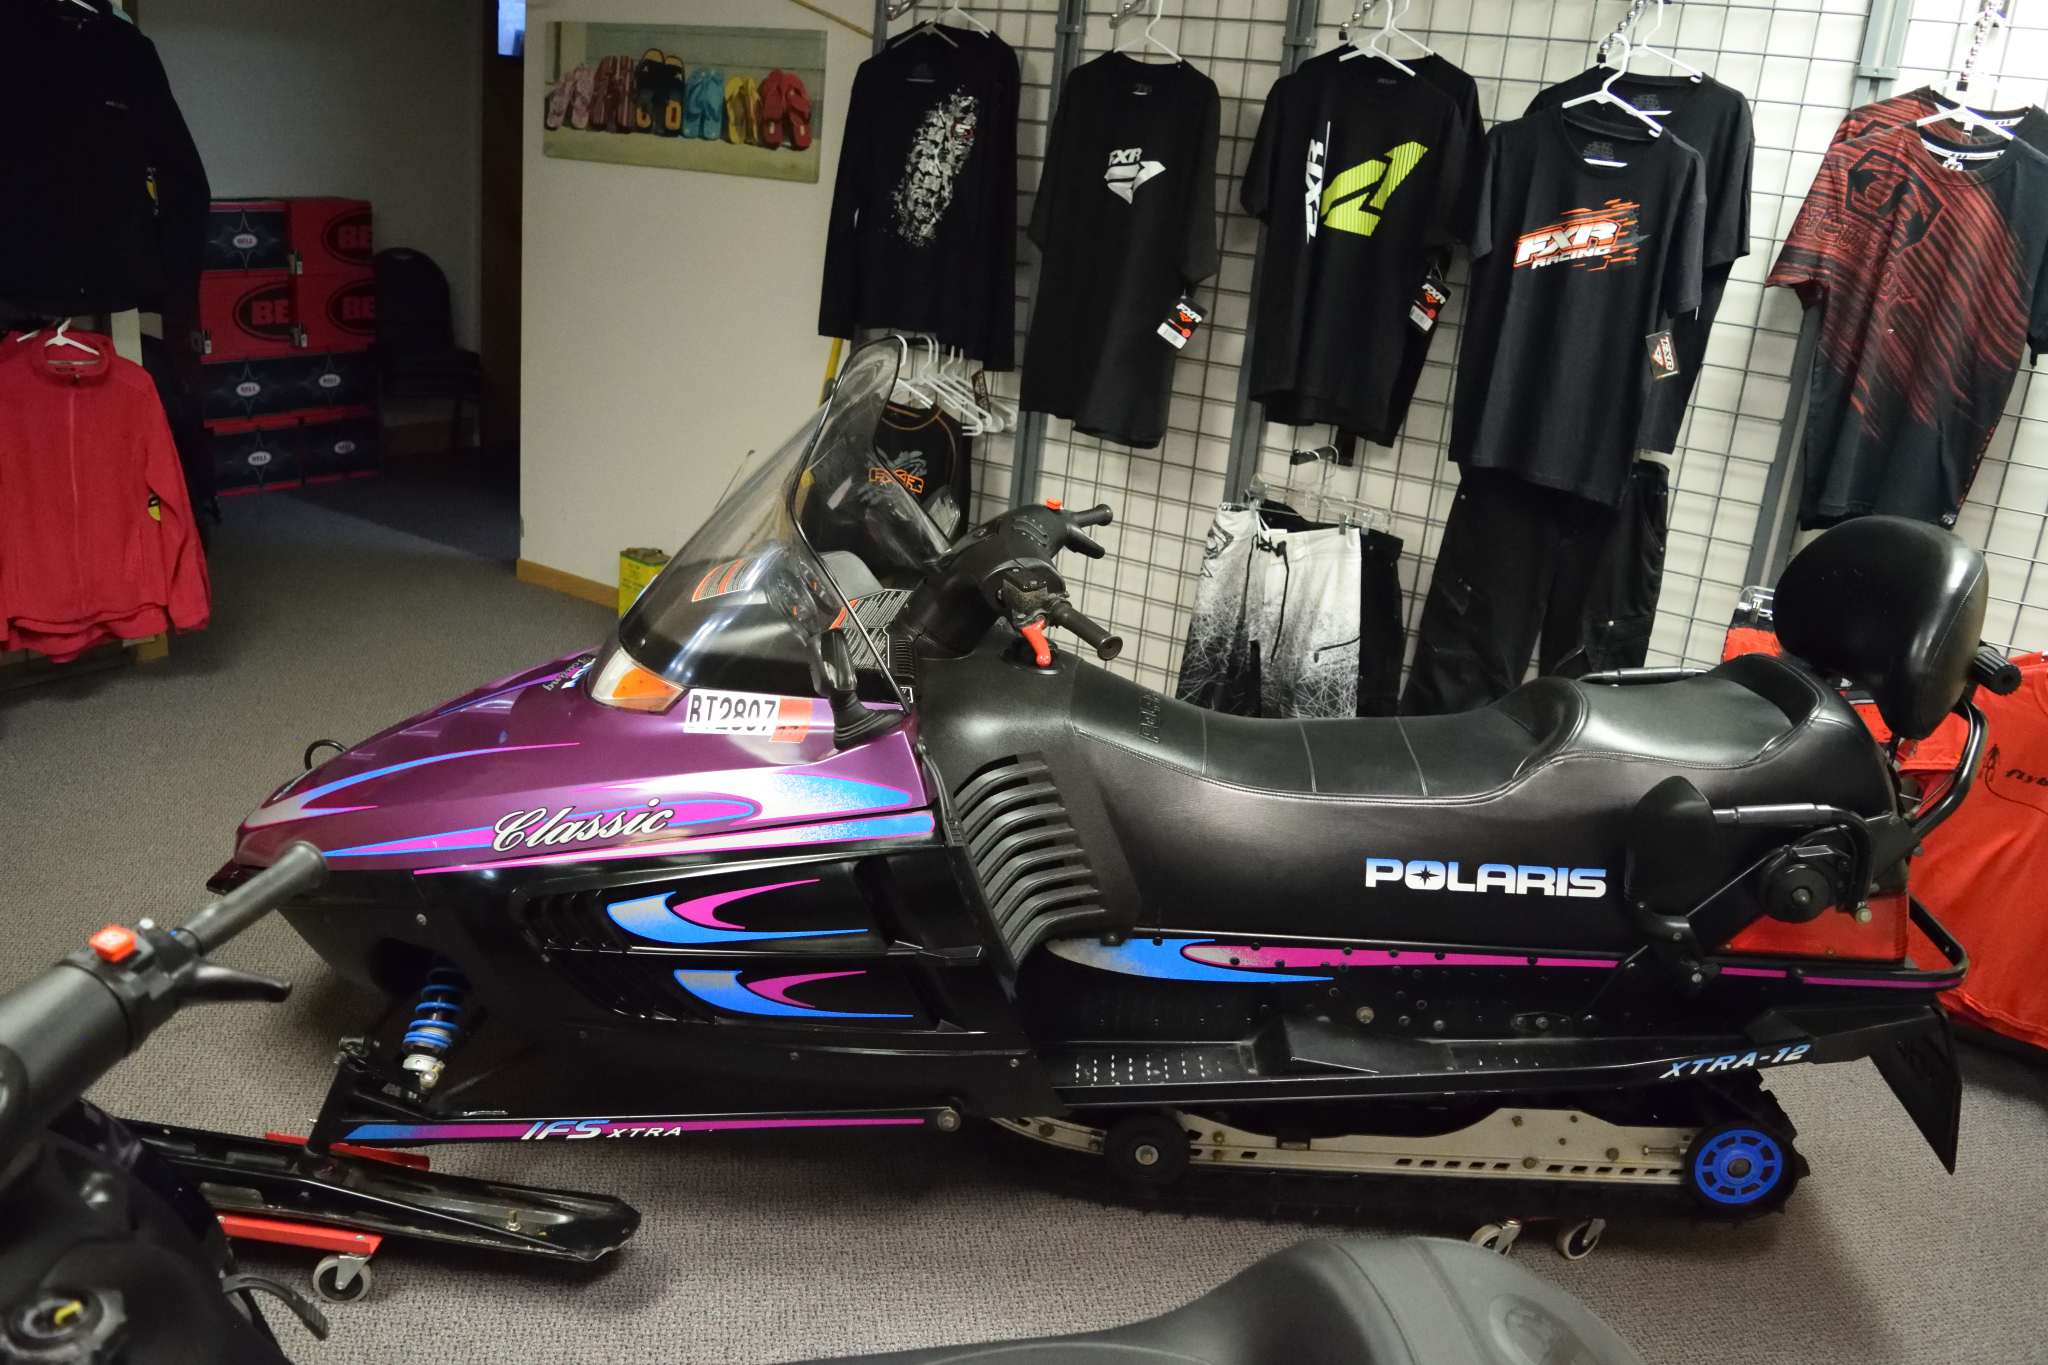 1997 Polaris Indy Classic Touring 2-up 500 Liquid Cooled Seaberg Motorsports Crosslake MN Side View